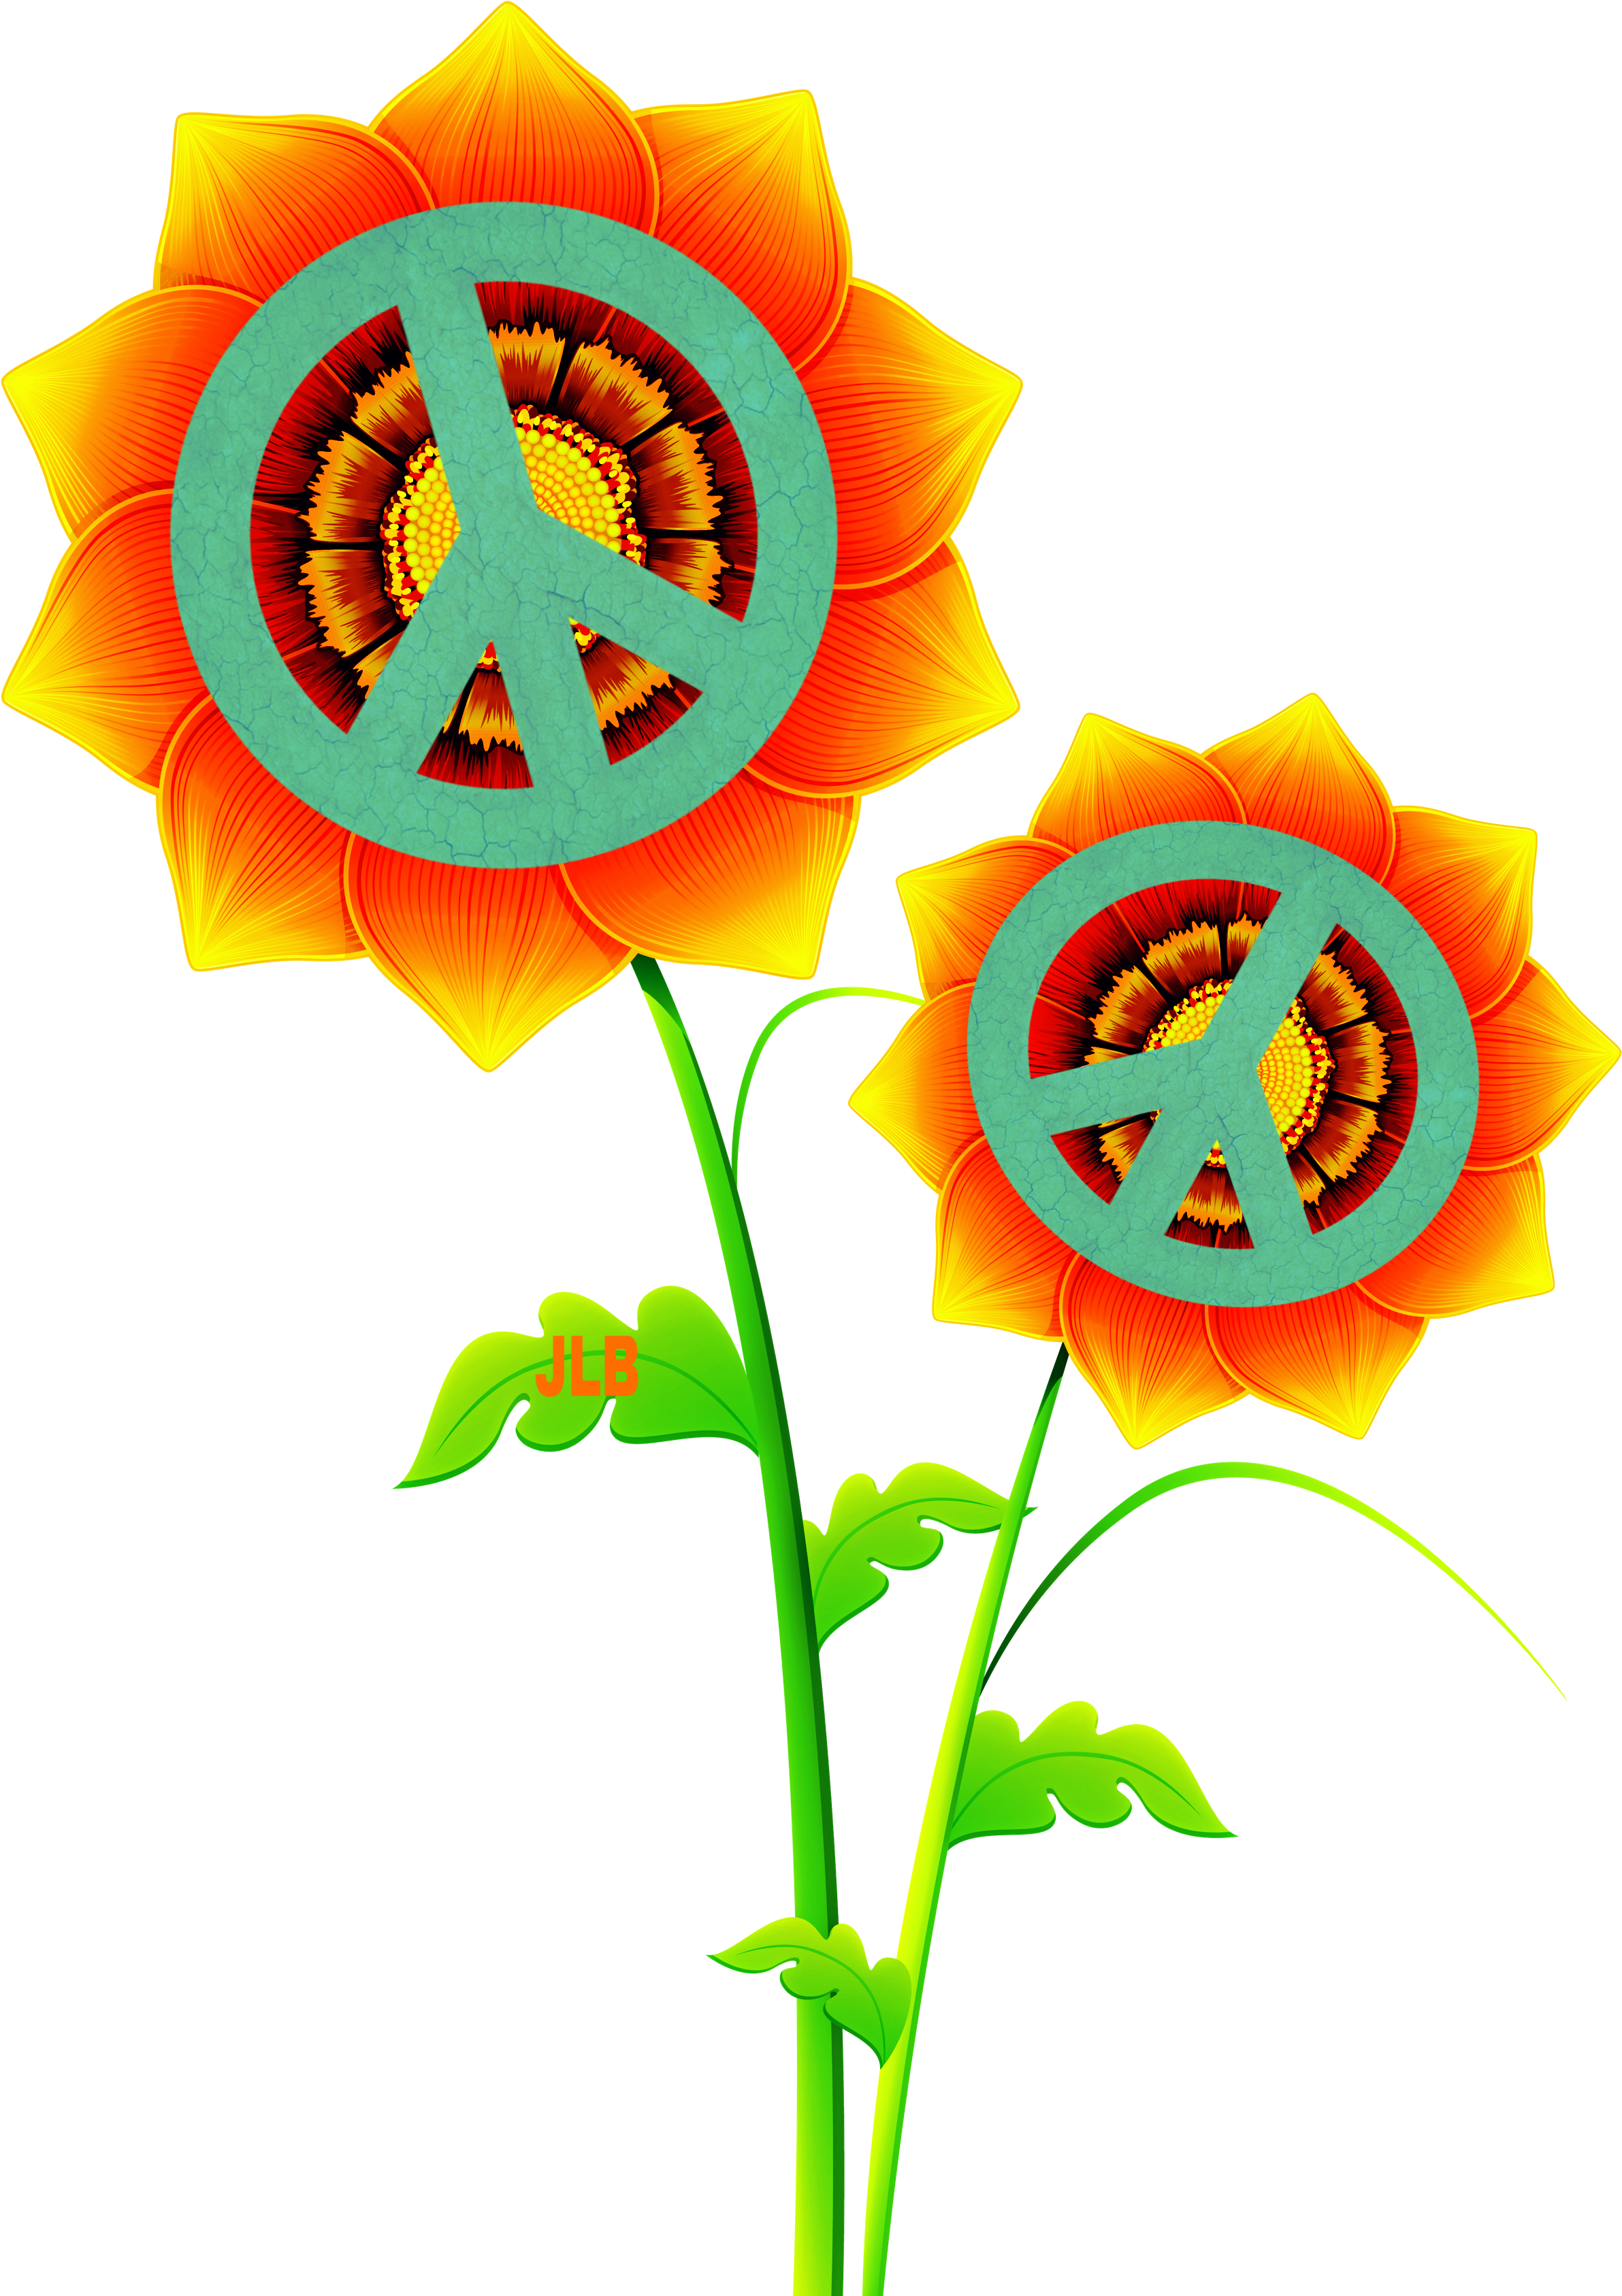 Peace Love Happiness Png - HD ☮/jlb Peace Love Happiness, Peace And Love, Hippie - Clip Art ...